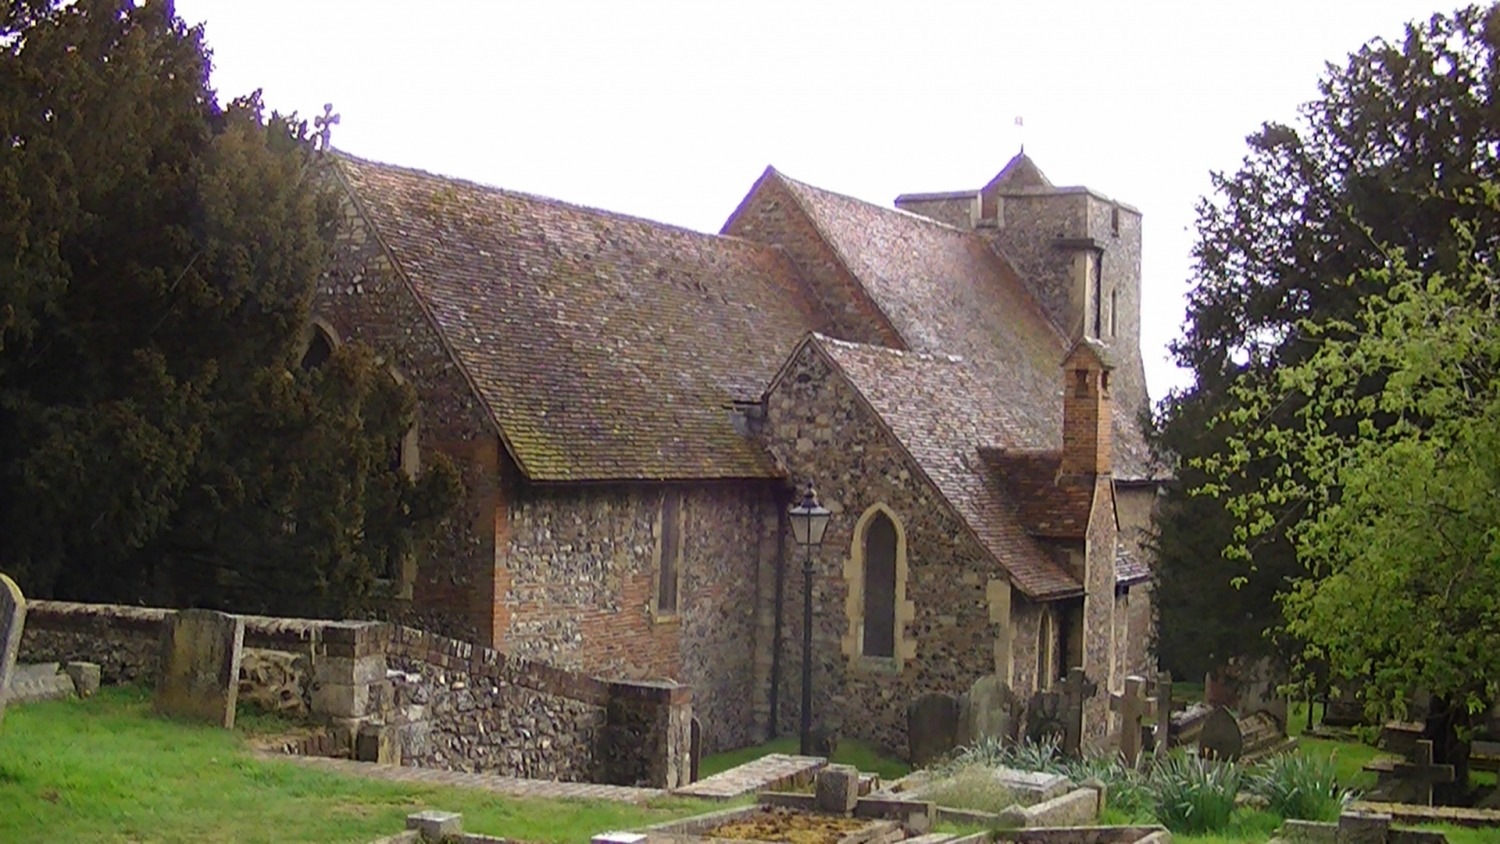 nathalie-languages-blog-what-to-see-in-whitstable-stmartin-church